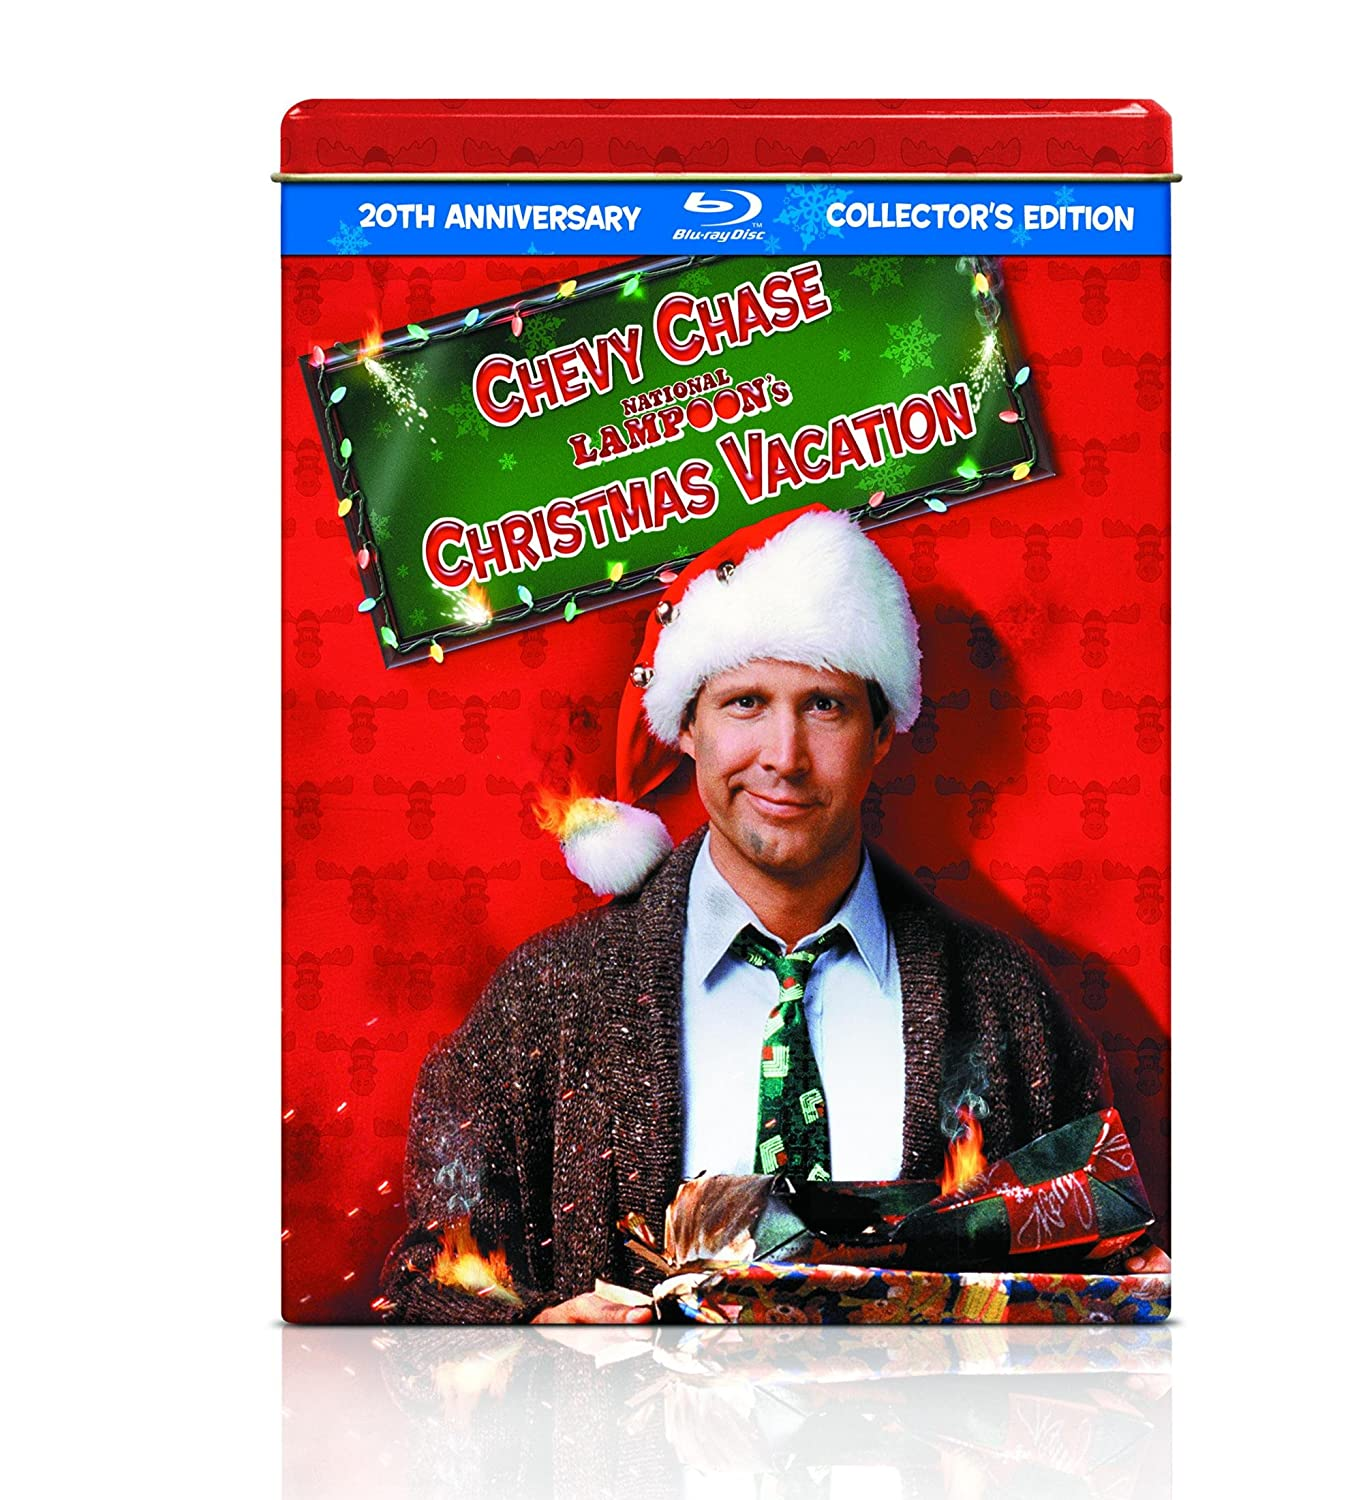 amazoncom national lampoons christmas vacation ultimate collectors edition blu ray john hughes chevy chase beverly dangelo randy quaid - Watch National Lampoons Christmas Vacation Online Free